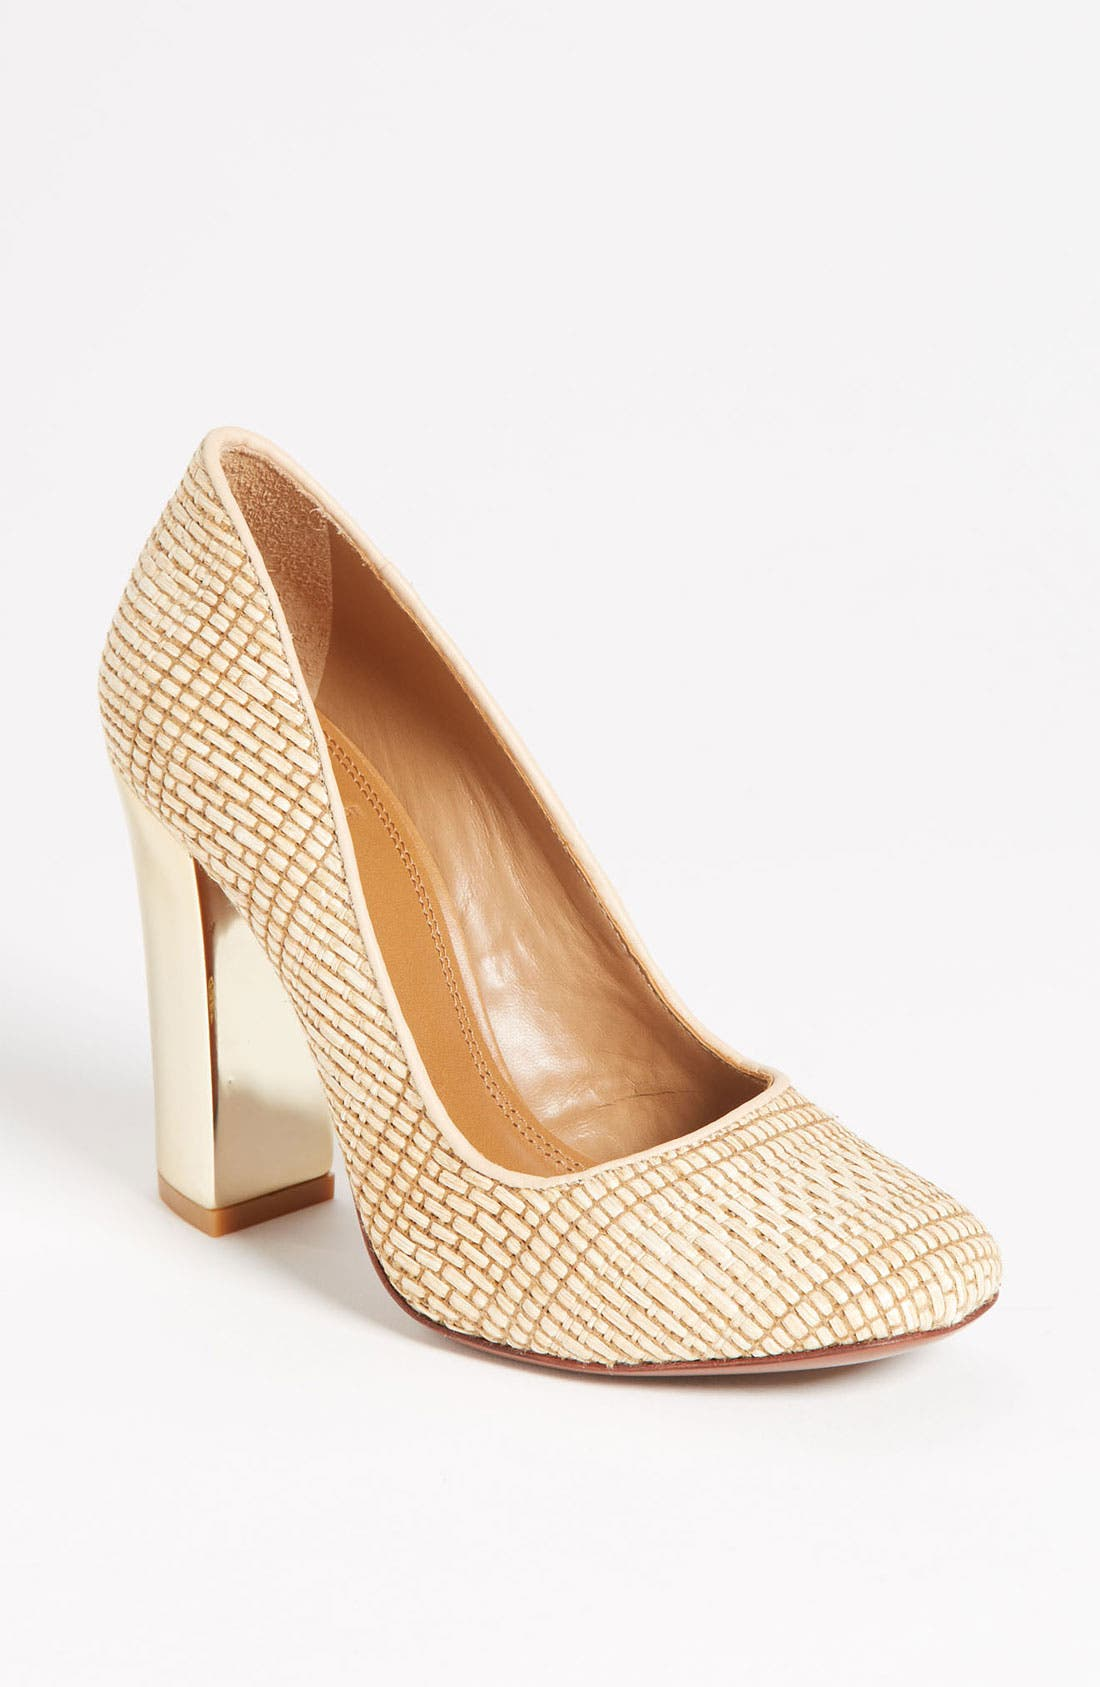 Alternate Image 1 Selected - Tory Burch 'Clay' Pump  (Nordstrom Exclusive)